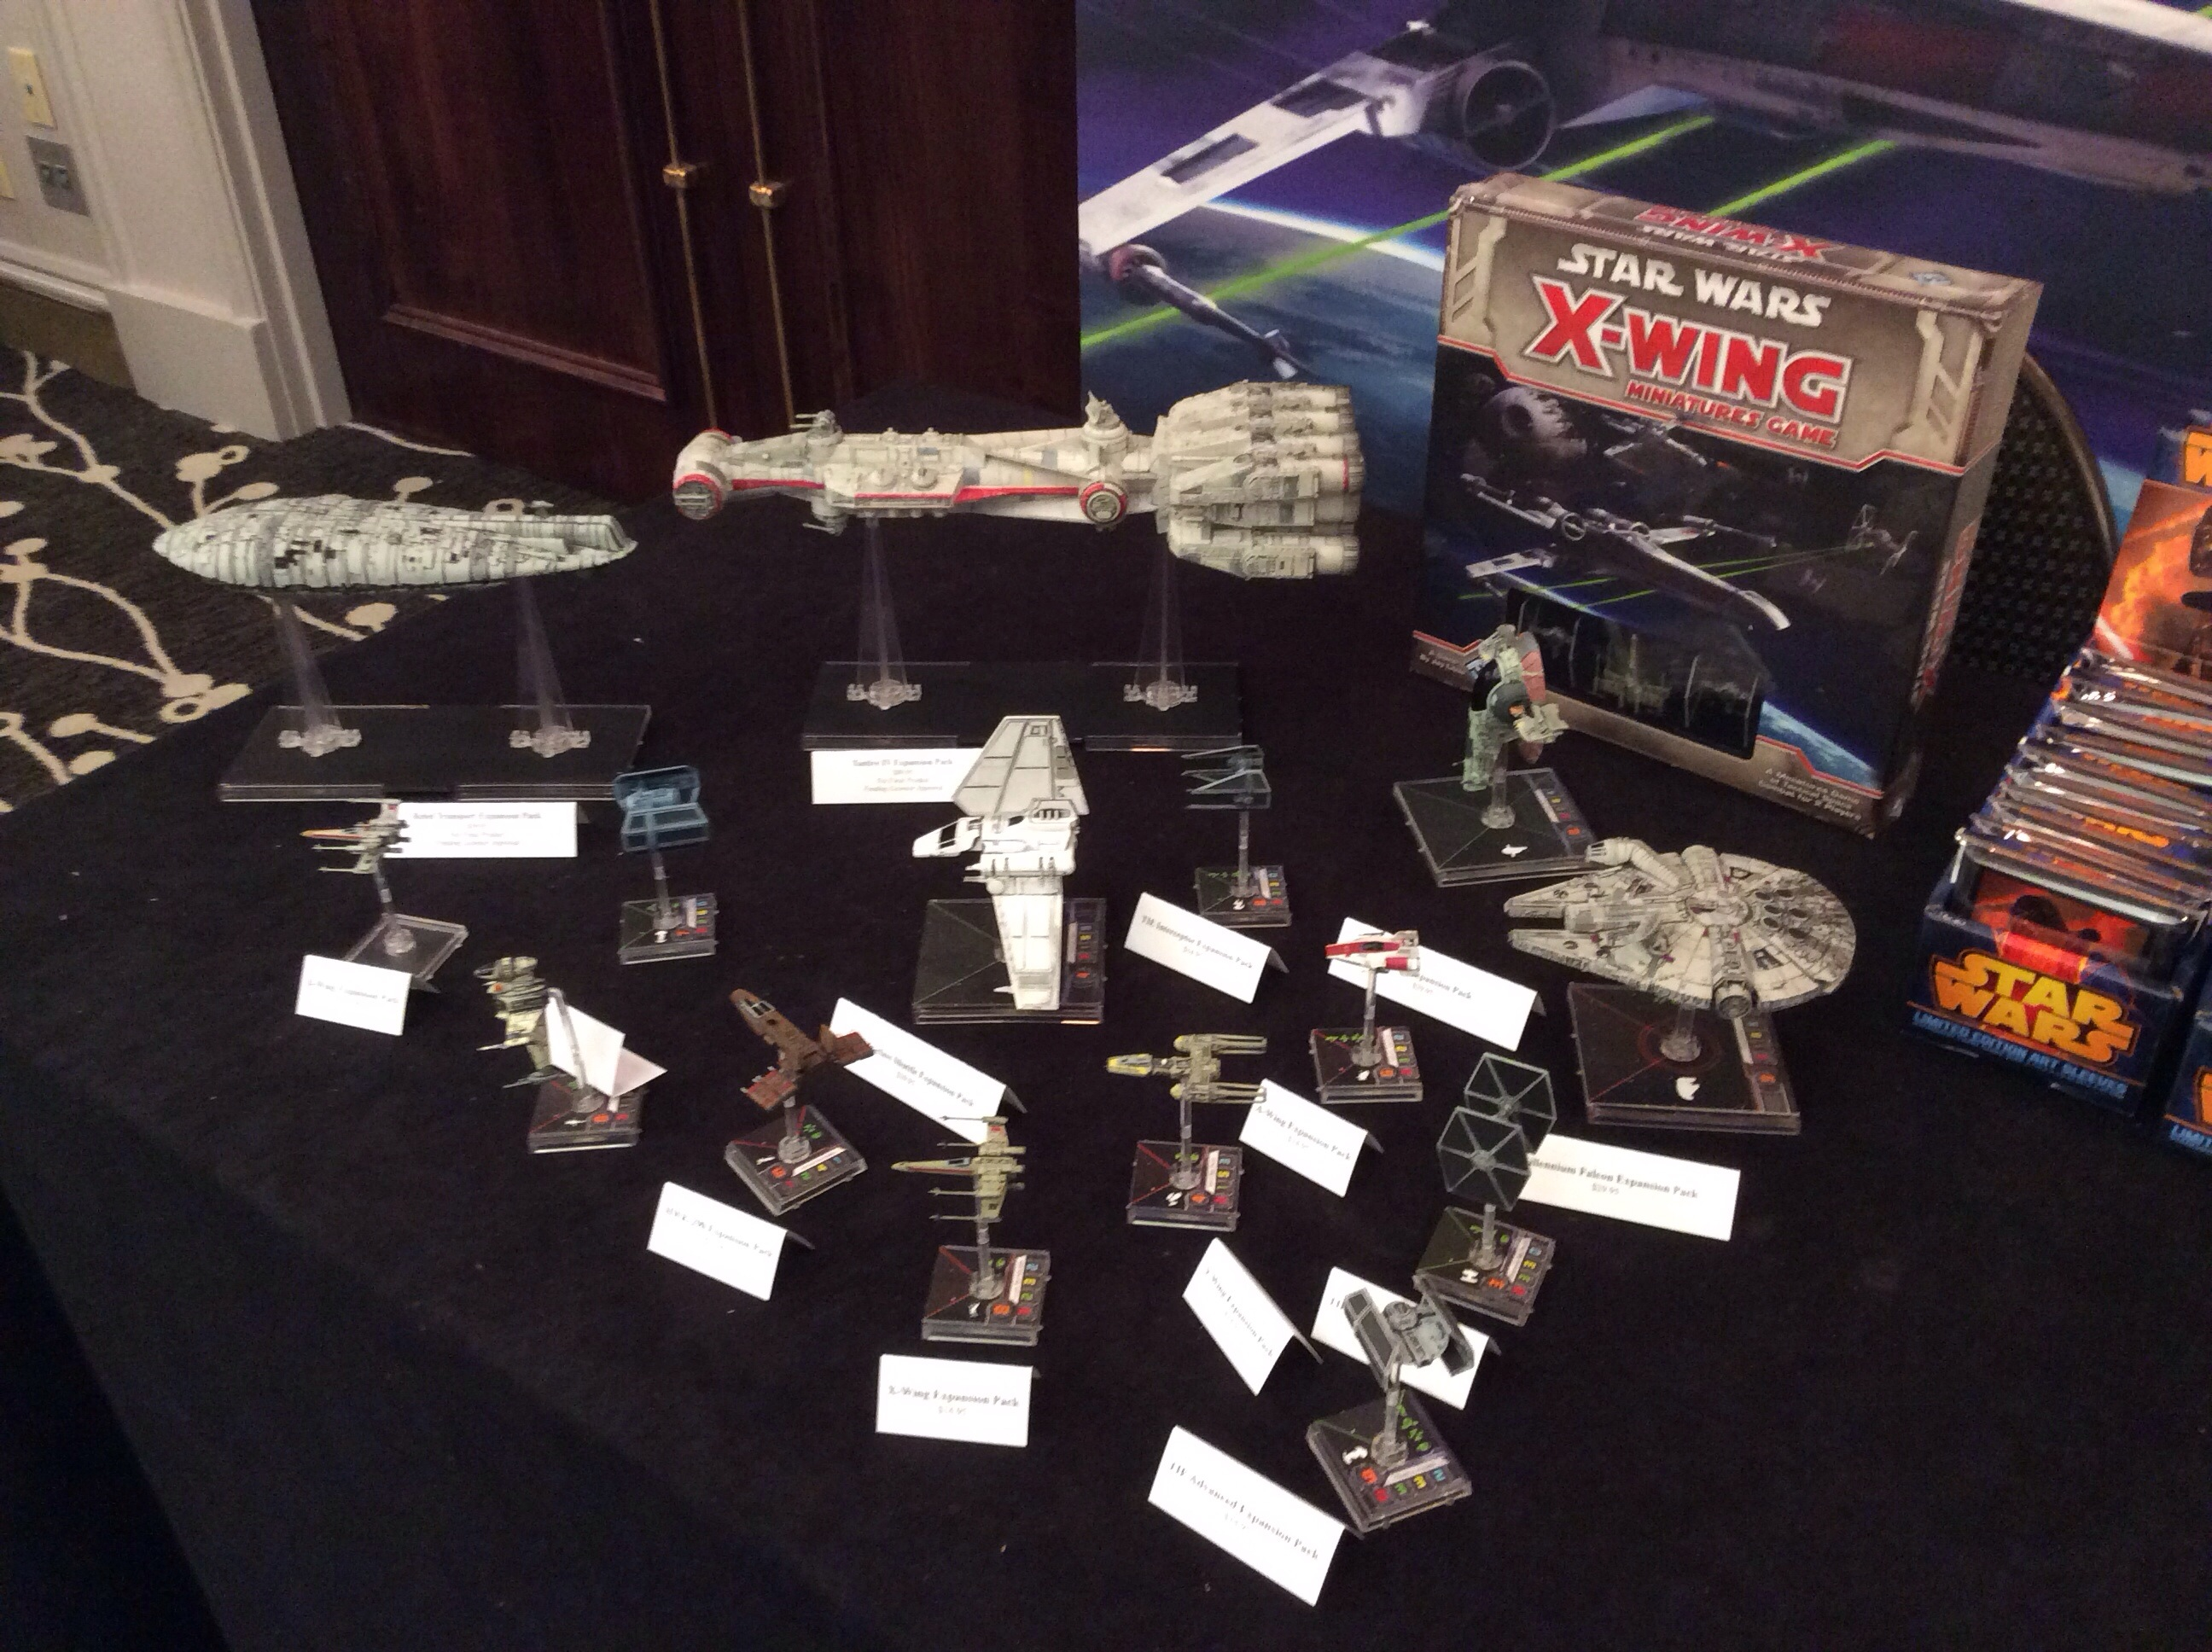 X Wing Game Star Wars X-Wing Minia...